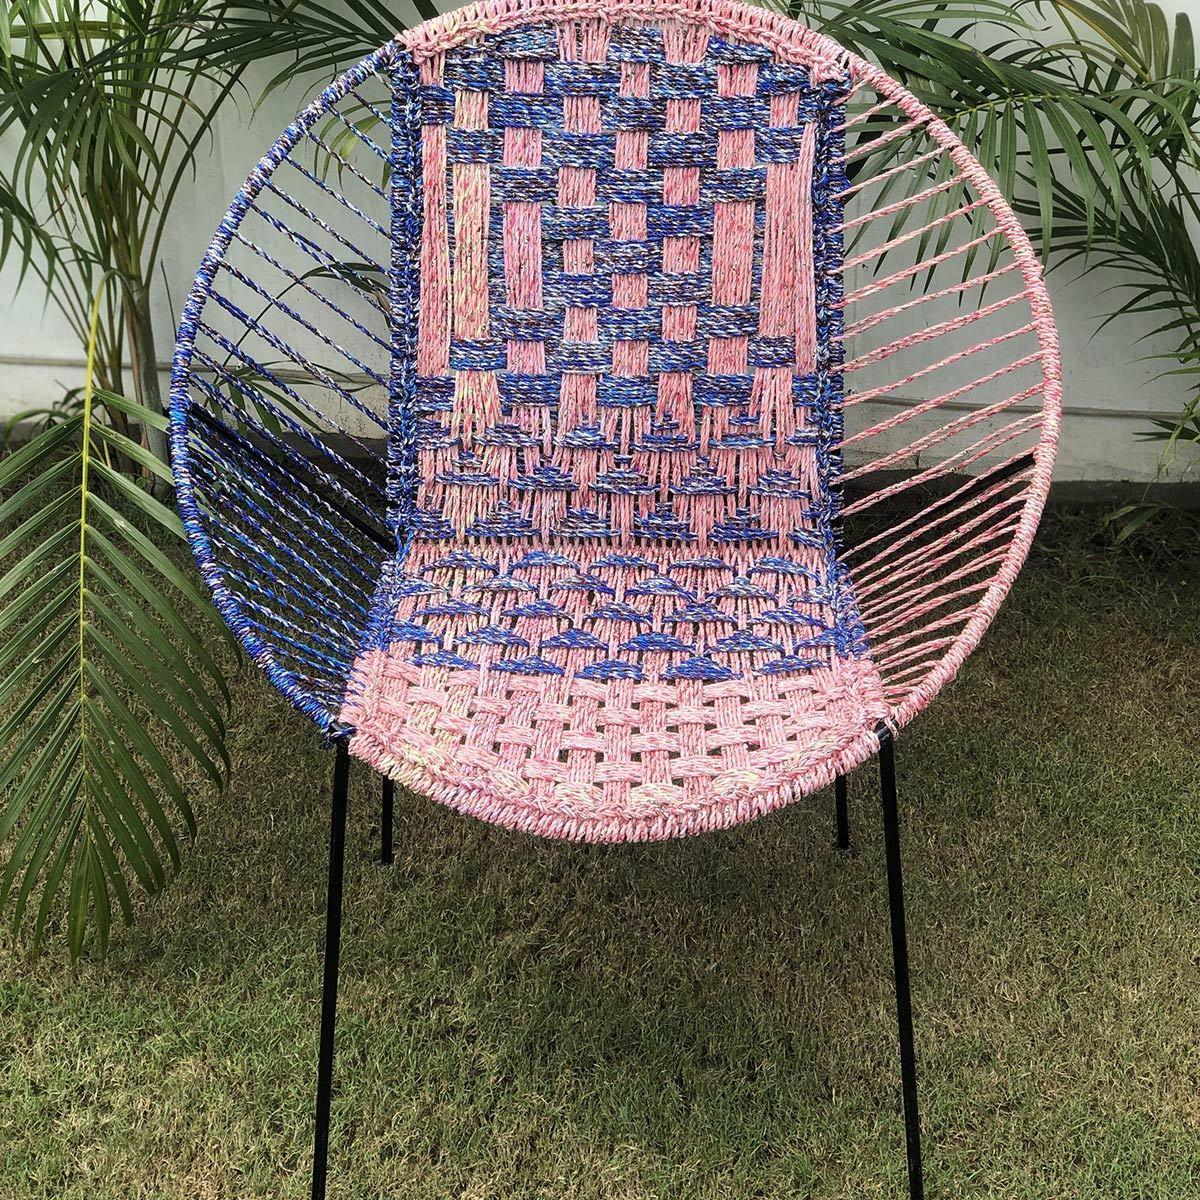 Aster Handwoven Colourful Plastic Waste Garden Chair